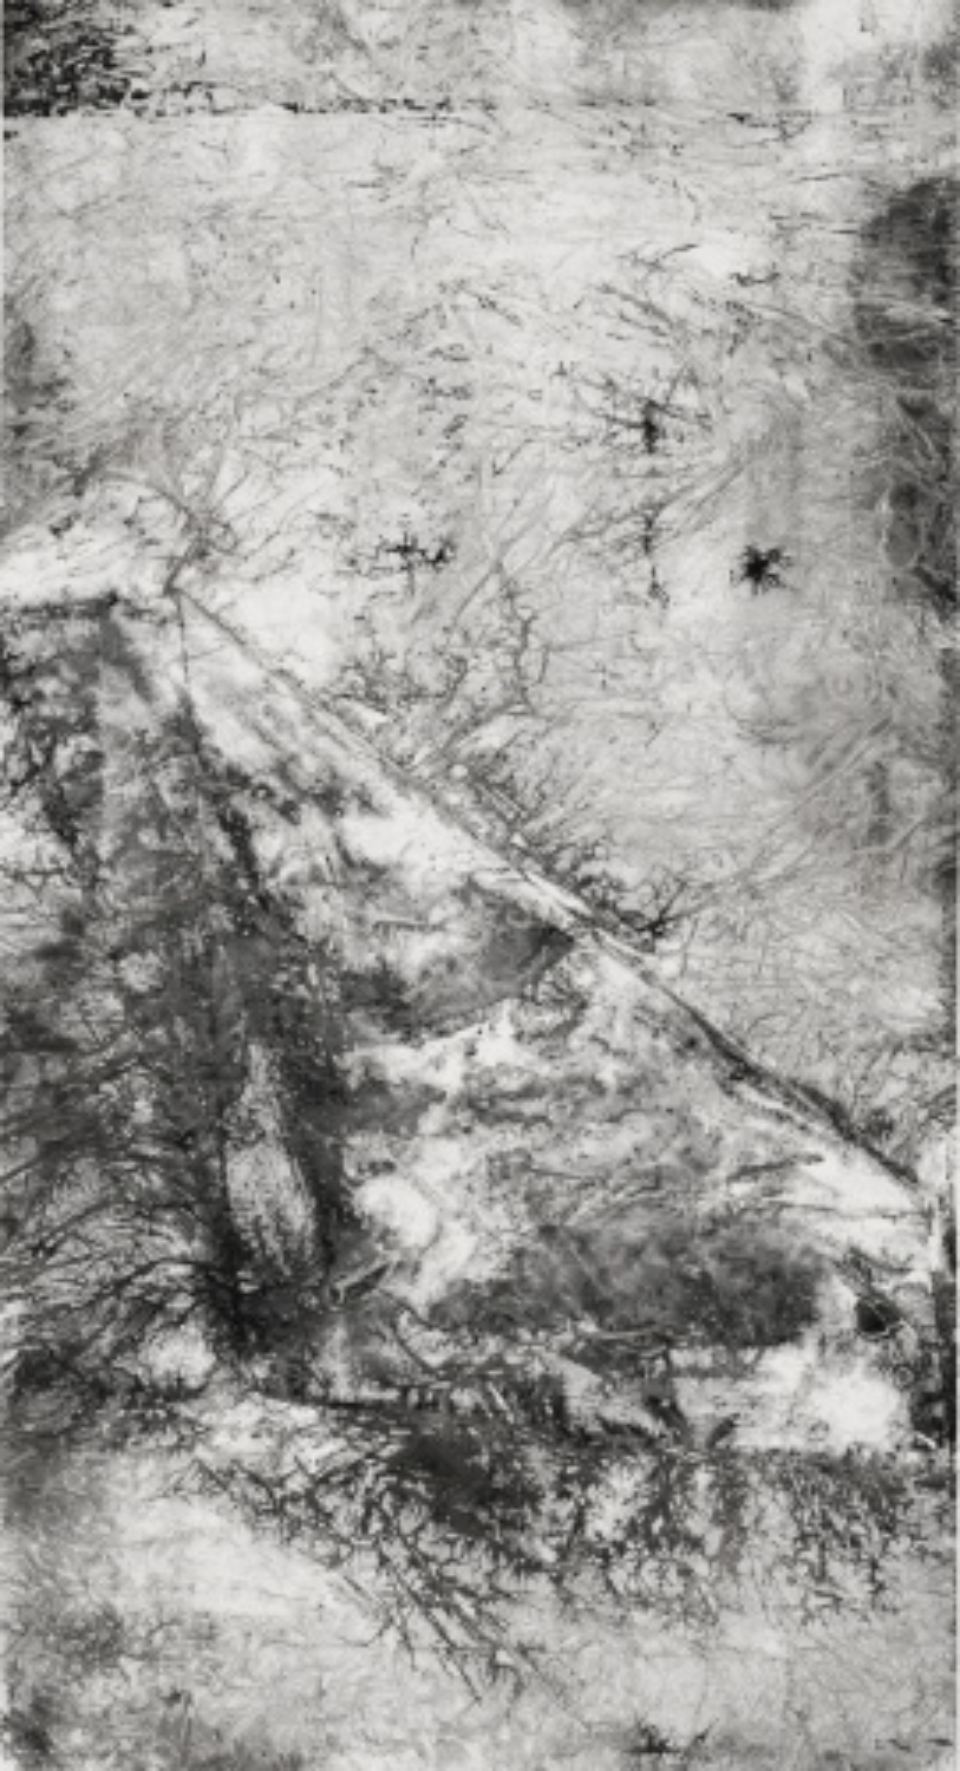 Zheng Chongbin: Dissolved Prime form ( e ) 2012 Ink, acrylics and wash on xuan paper L 92.5 cm x H 188 cm